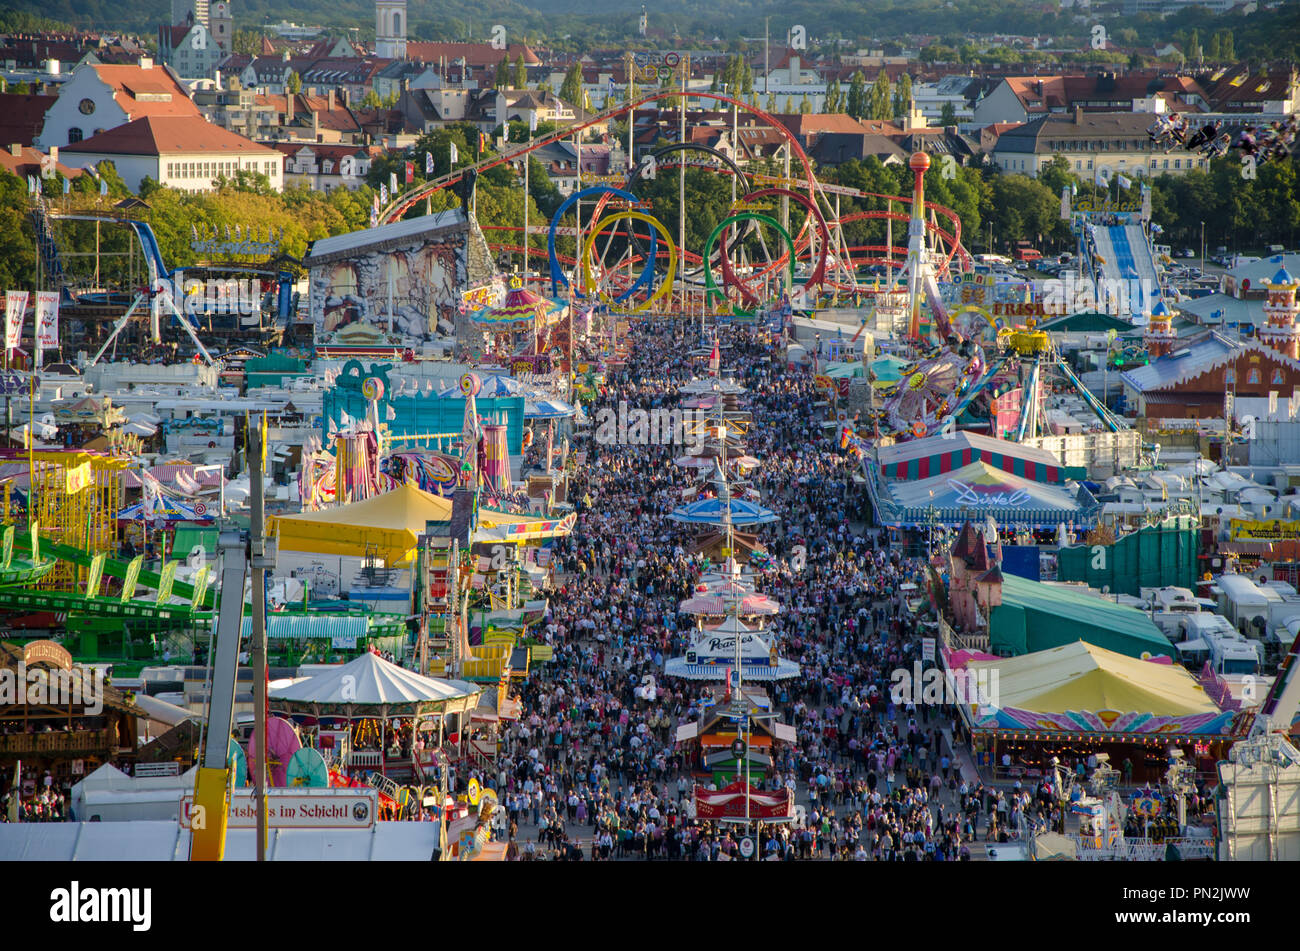 Aerial view of Oktoberfest in Munich, Germany. - Stock Image